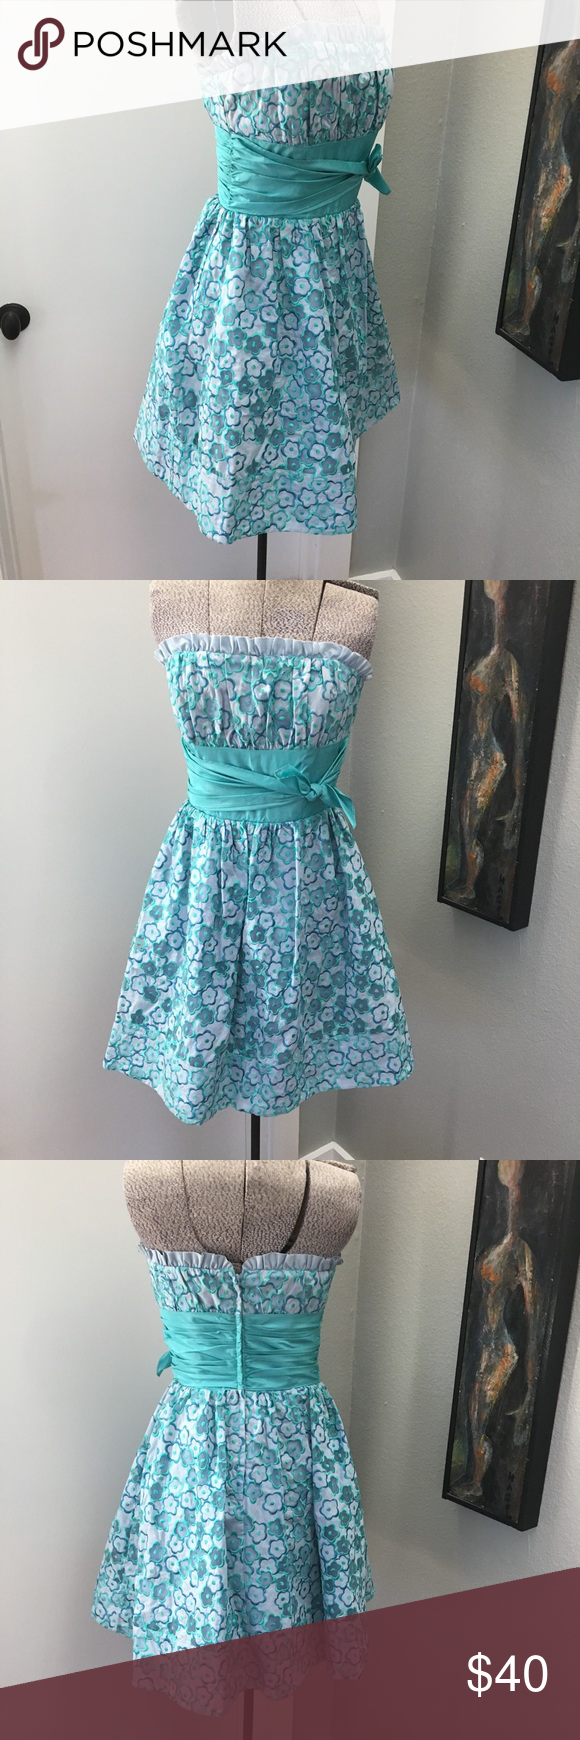 BETSEY JOHNSON Strapless Floral Party Dress 4 So cute with built in ...